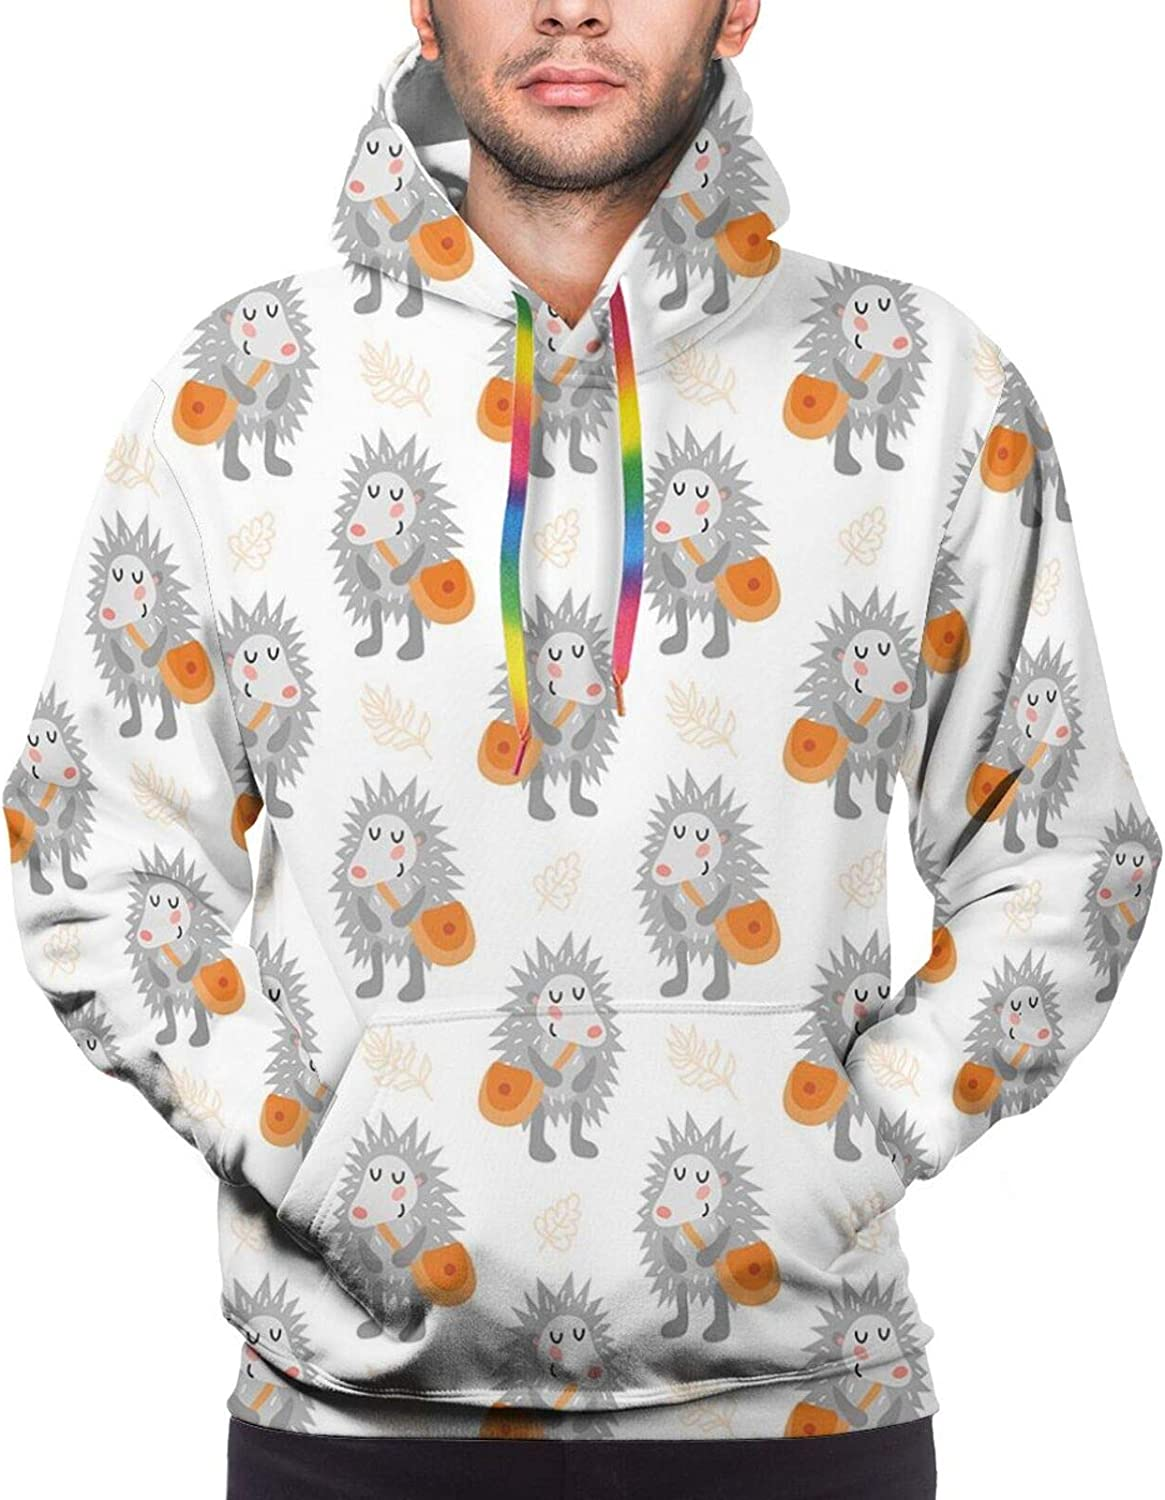 Men's Hoodies Sweatshirts,Illustration of Spiky Animals with Orange Bags Subtle Smile and Leaves